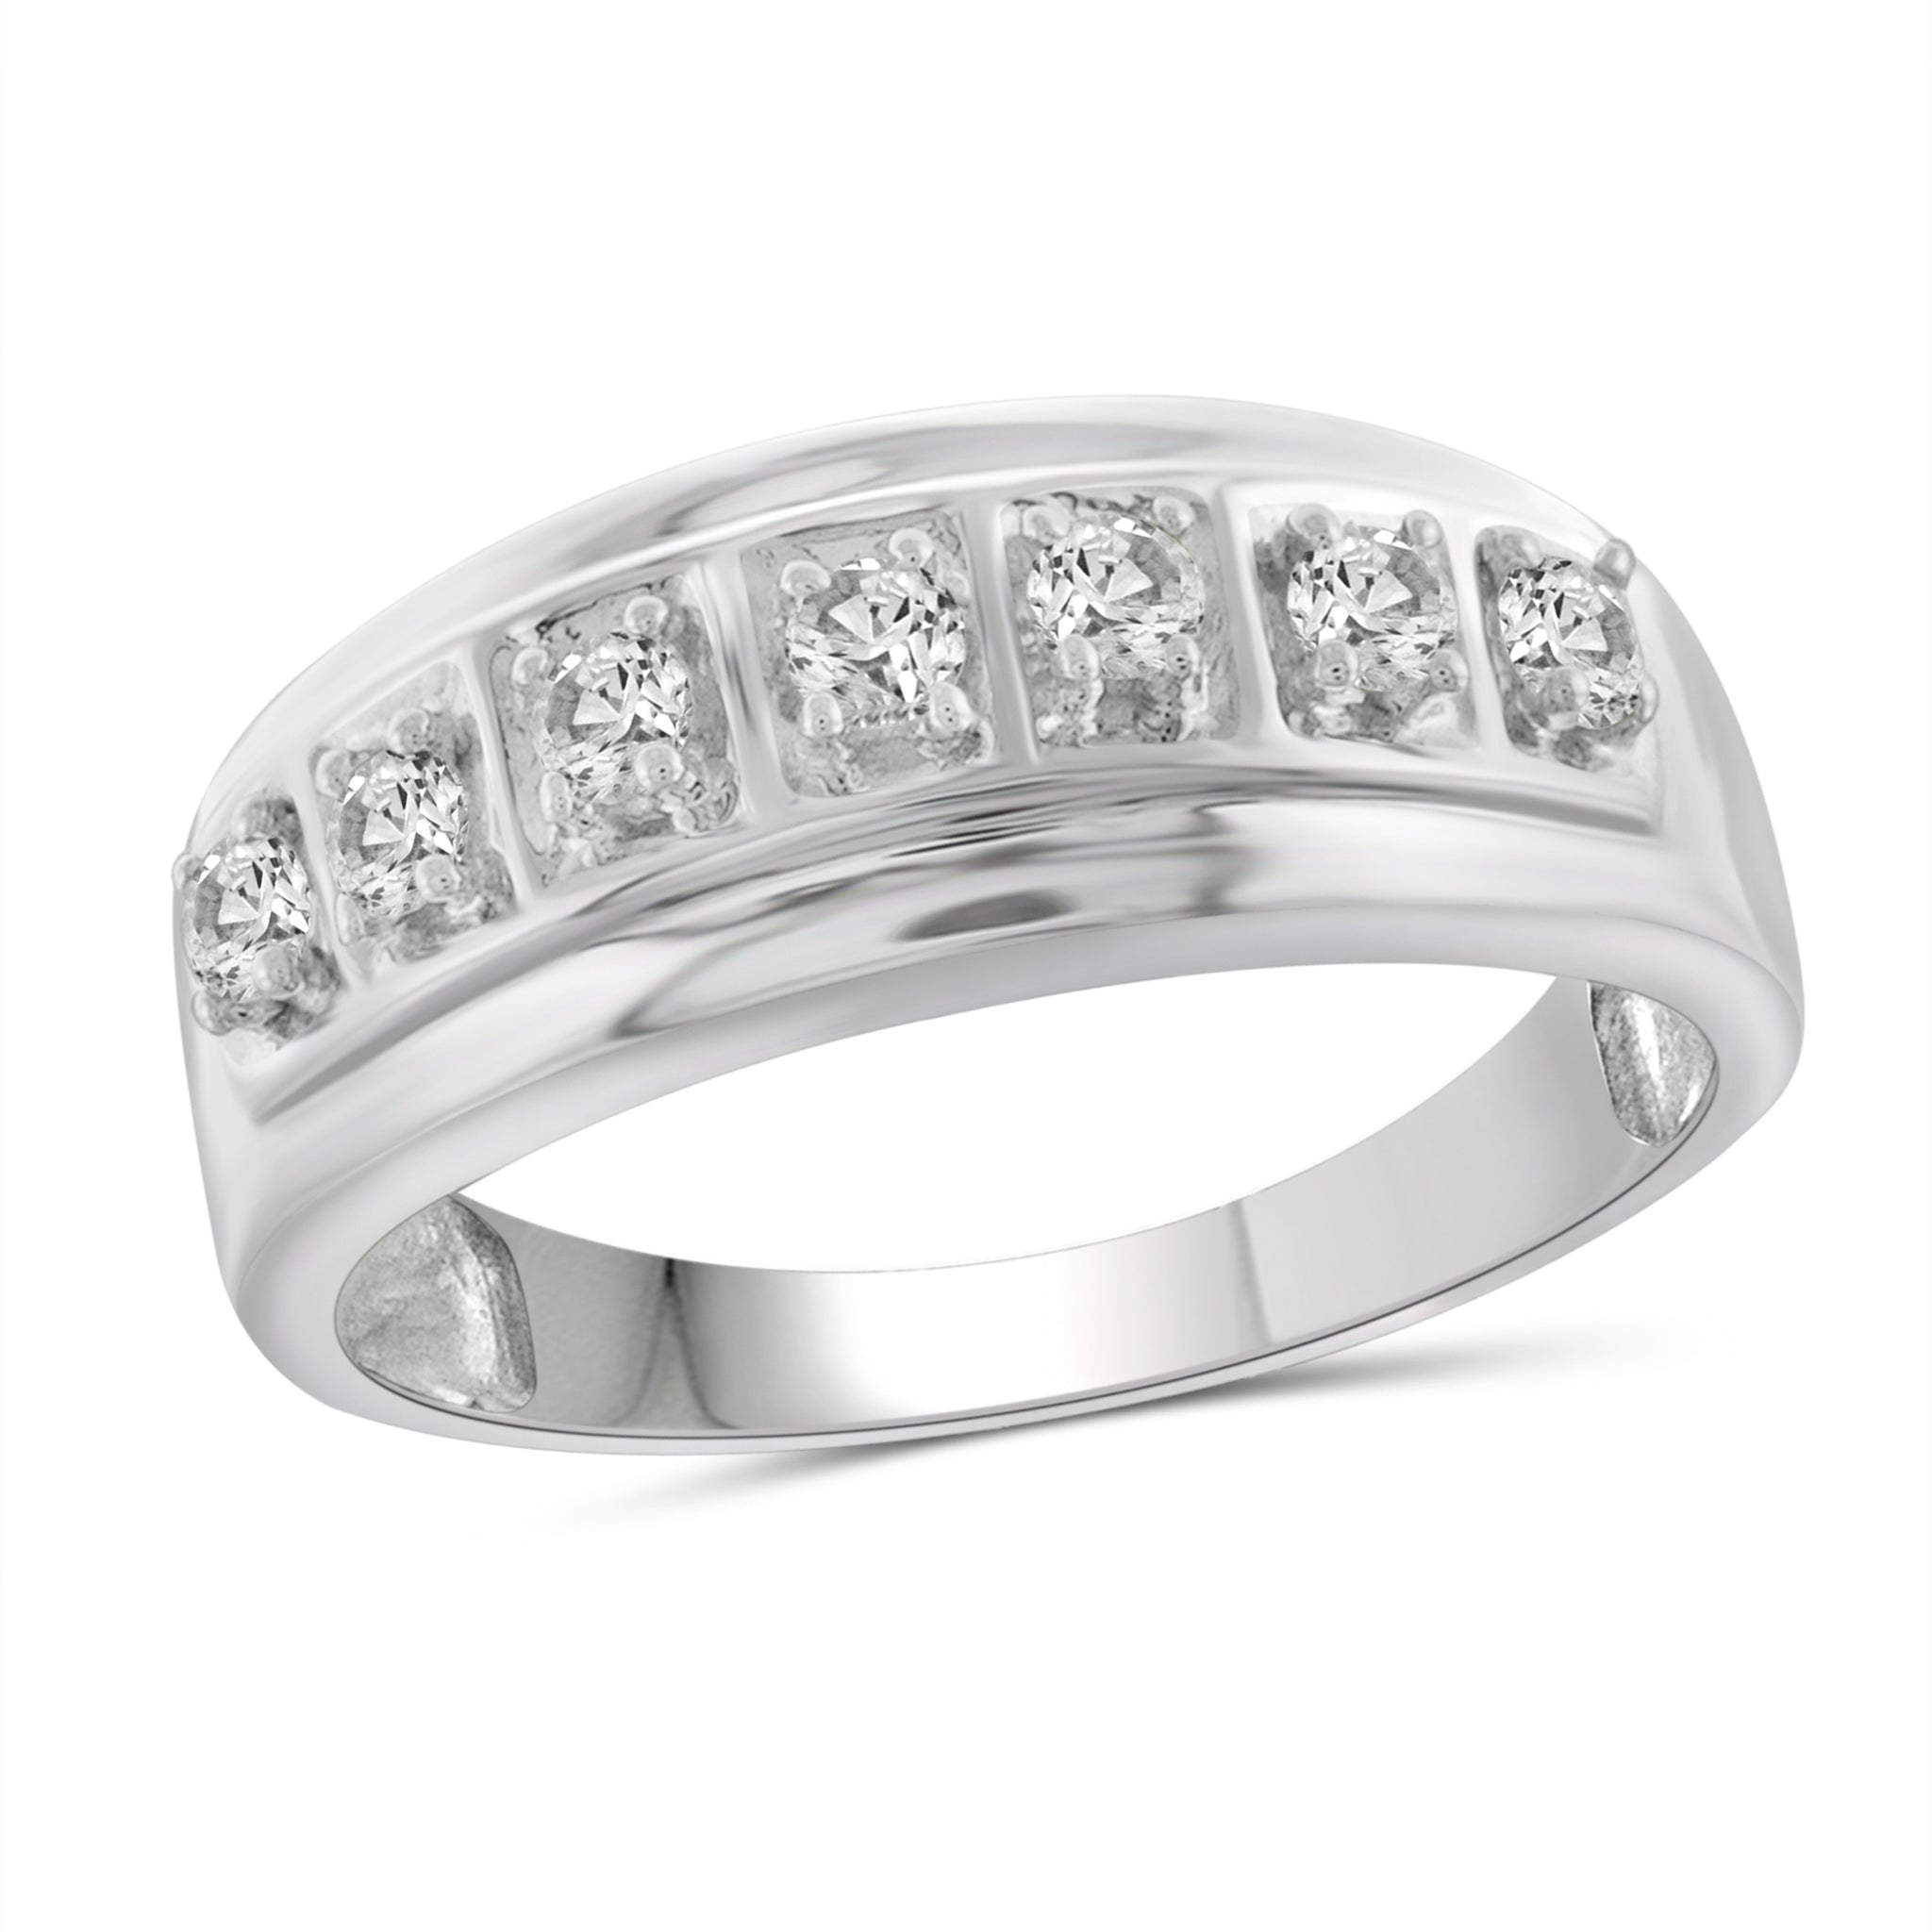 Jewelnova 1/2 Carat T.W. White Diamond 10k White Gold Men's Ring